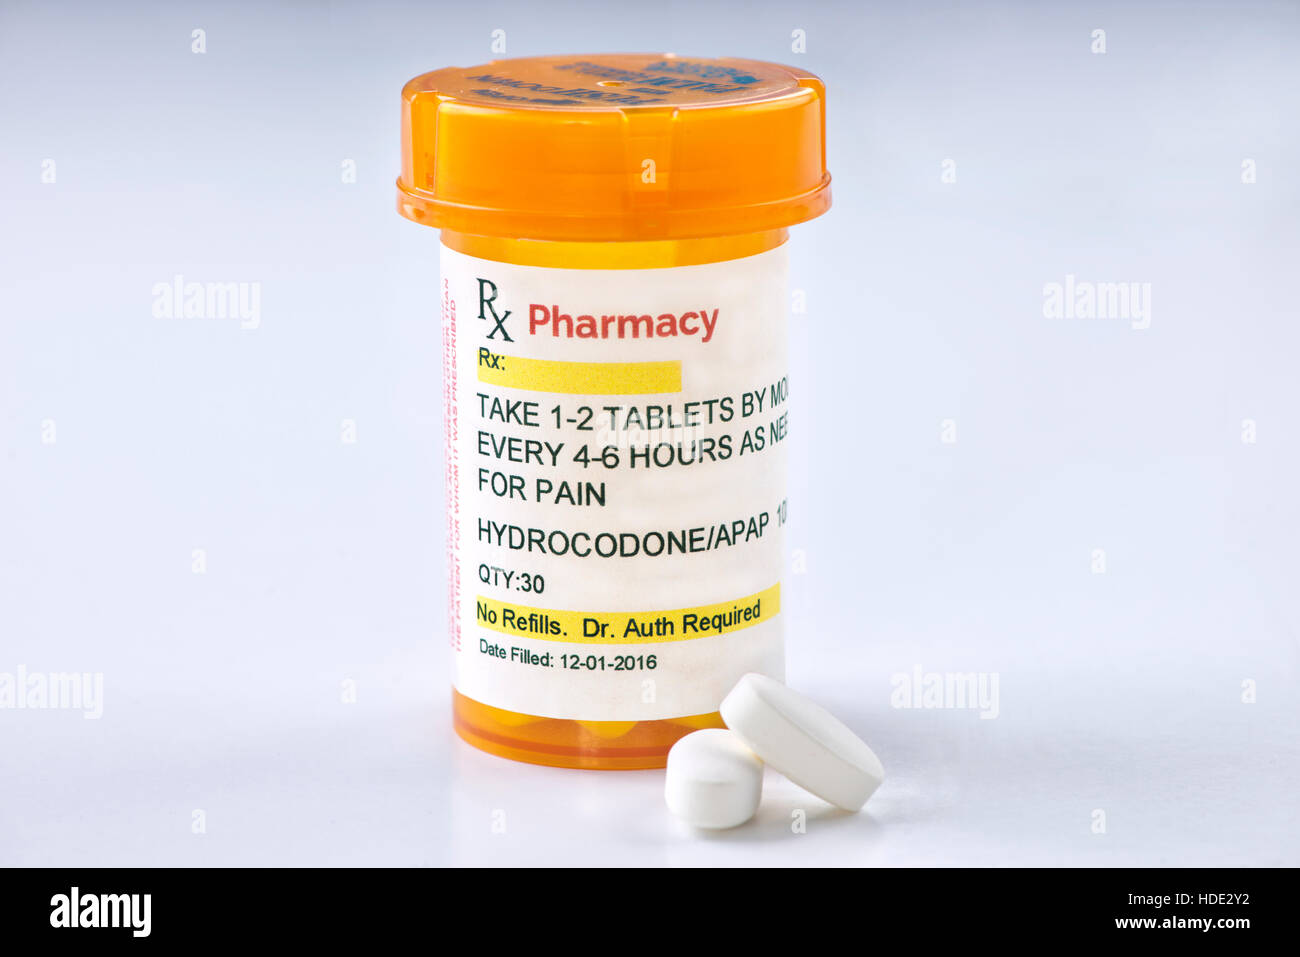 Hydrocodone prescription bottle.  Hydrocodone is a generic medication name and label was created by photographer. - Stock Image